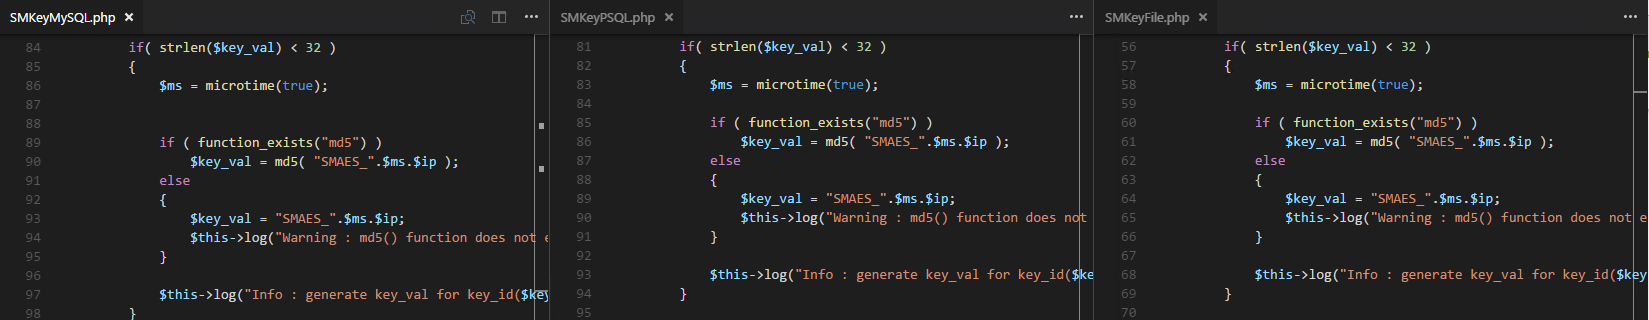 New client key generation code is cut and pasted between the different key storage methods.